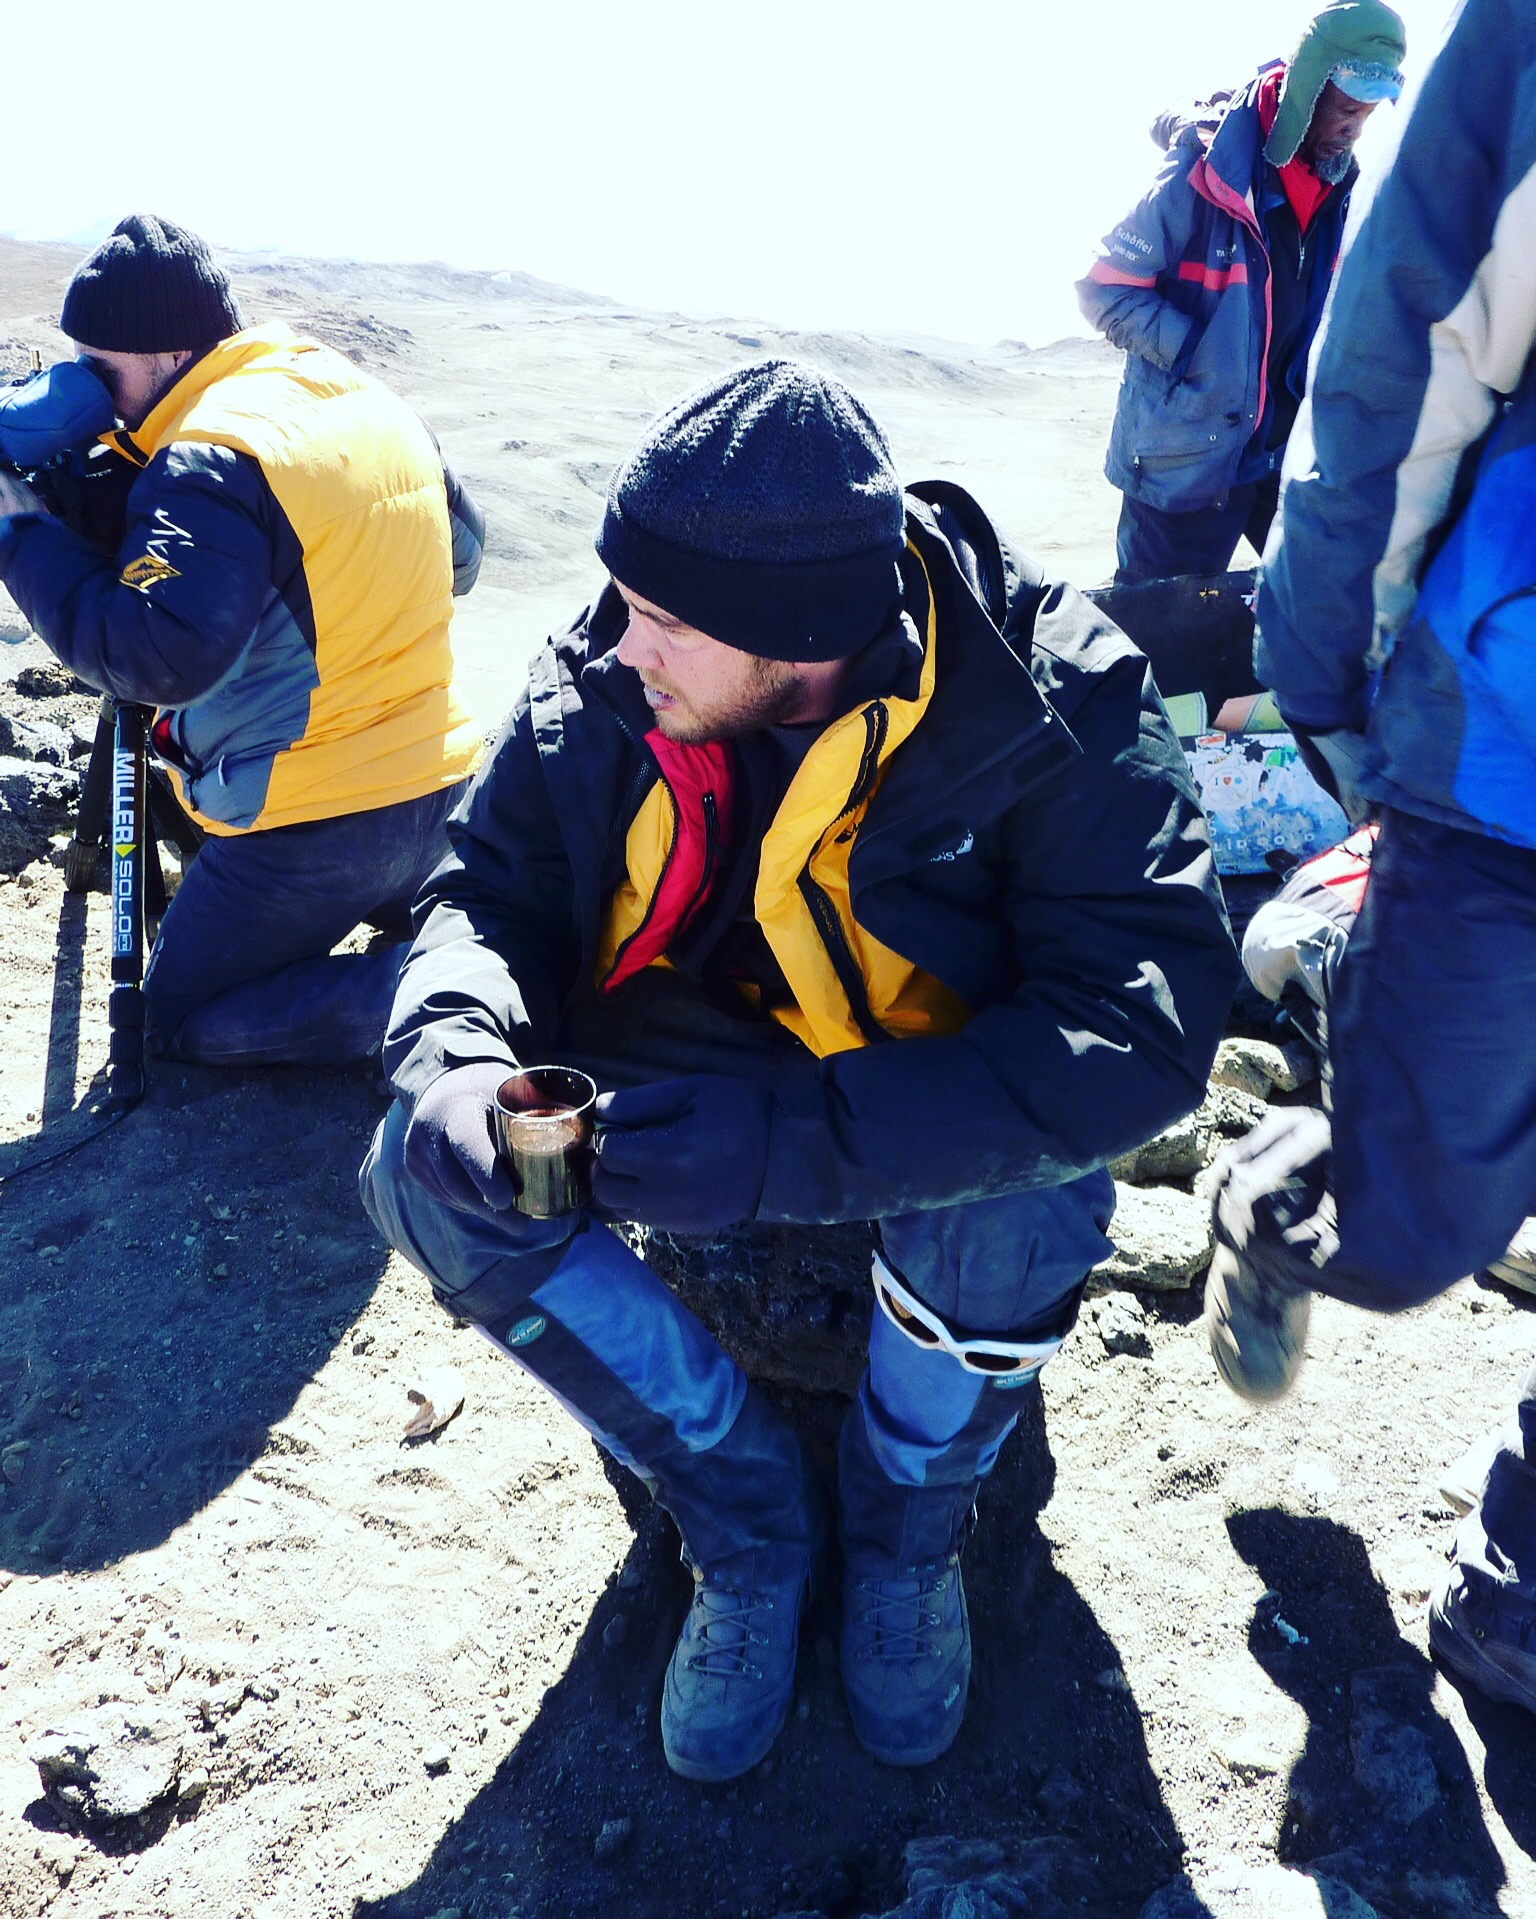 Admiring the view from the top of Mt Kilimanjaro after a gruelling six-day TV shoot for Seven Network, Australia.